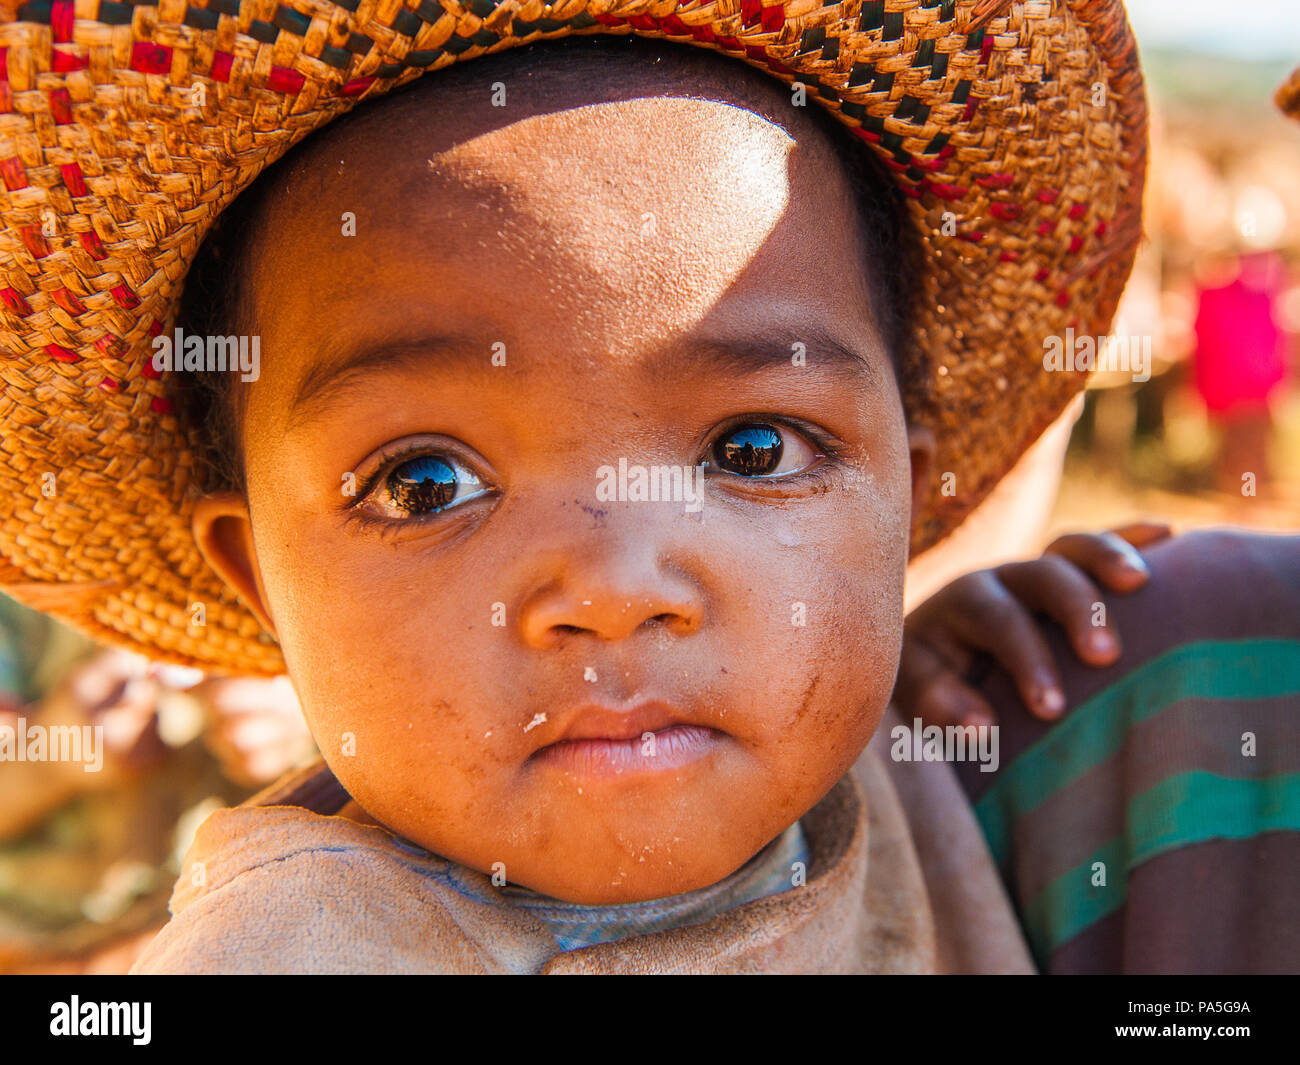 Little Sombrero Stock Photos   Little Sombrero Stock Images - Alamy 18c975435cd